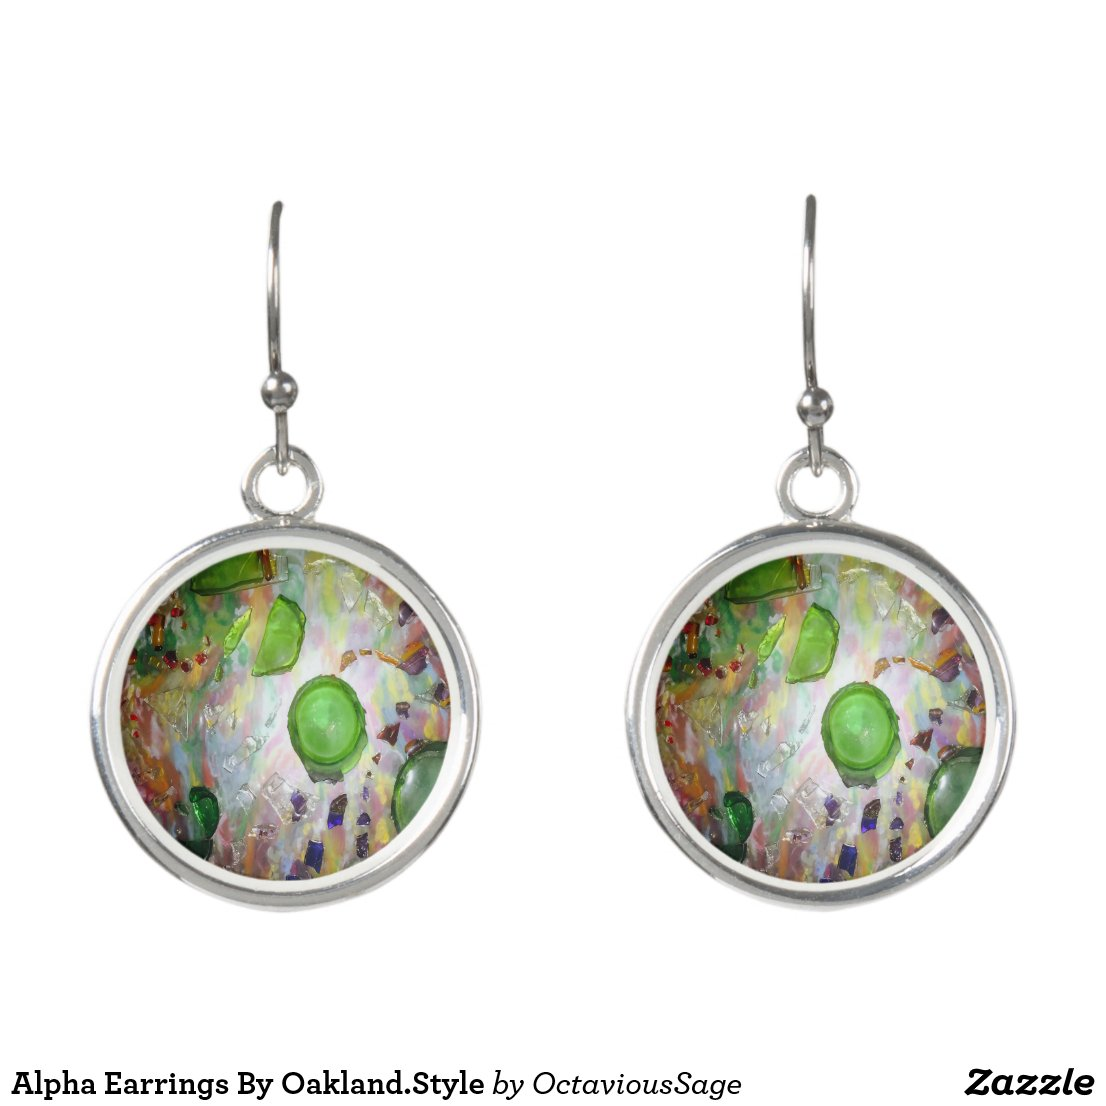 Alpha Earrings By Oakland.Style